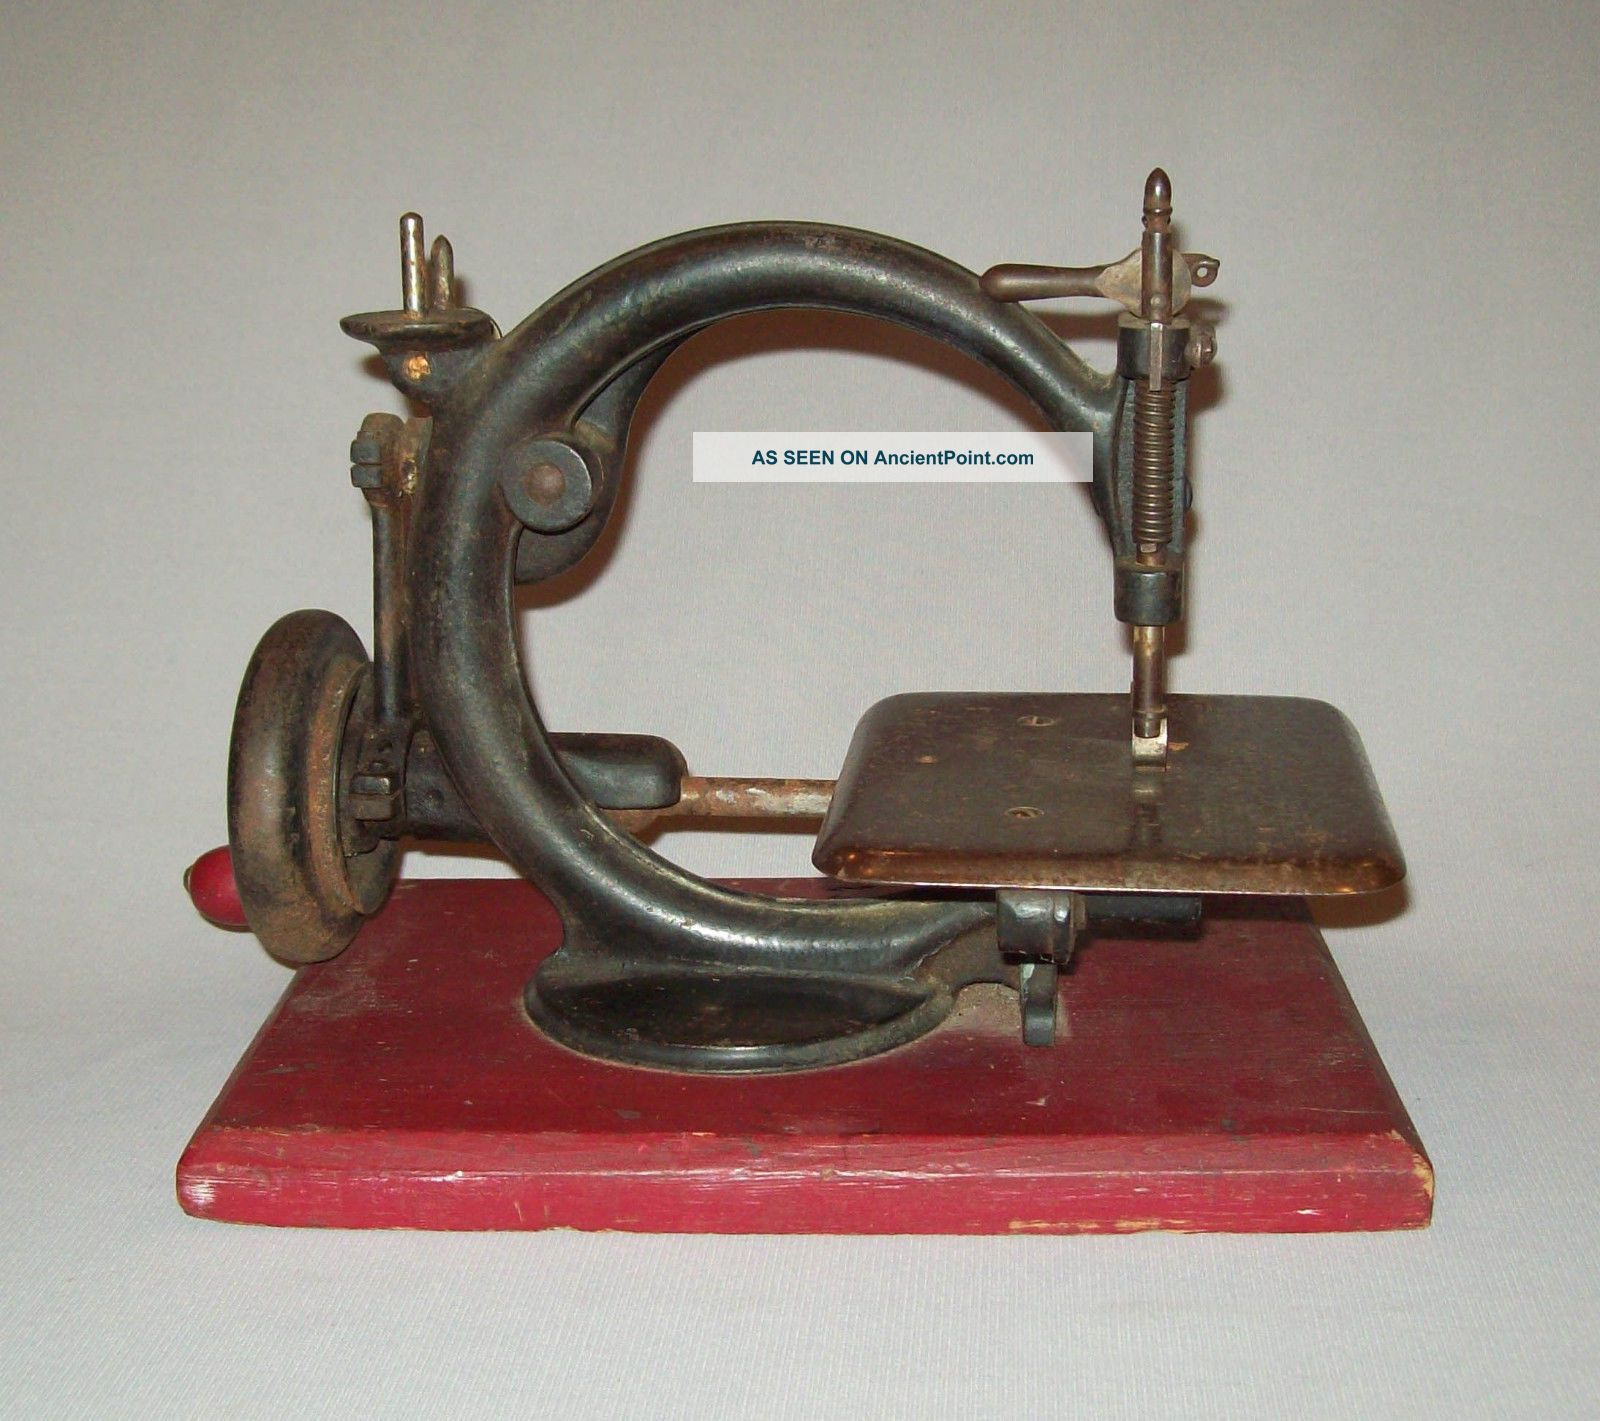 Old Antique Vtg Sewing Machine Patd 1864 Willcox And Gibbs Hand Crank Unrestored Sewing Machines photo